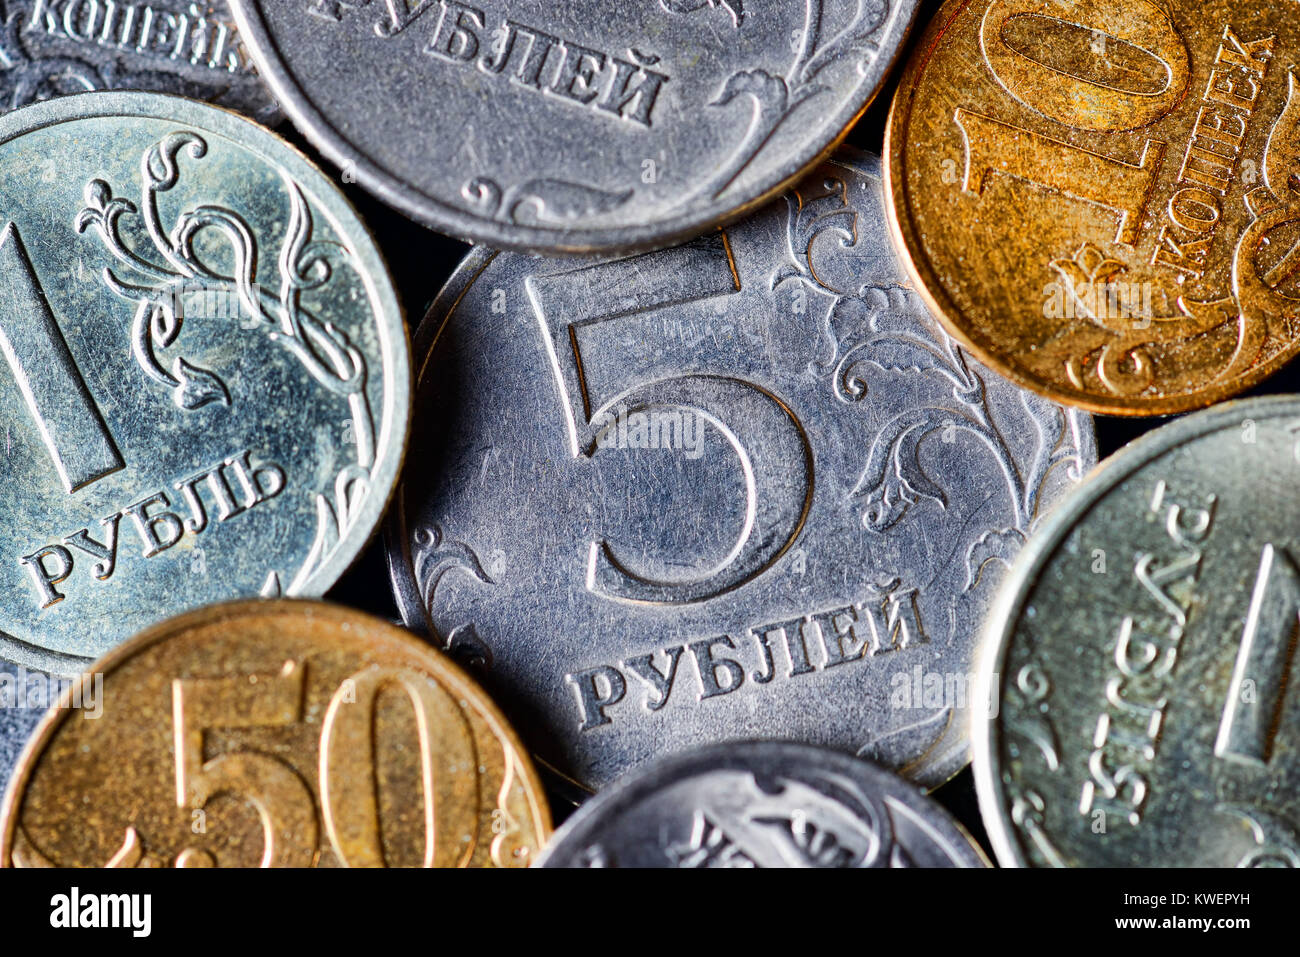 Russian roubles and kopecks, Russische Rubel und Kopeken - Stock Image